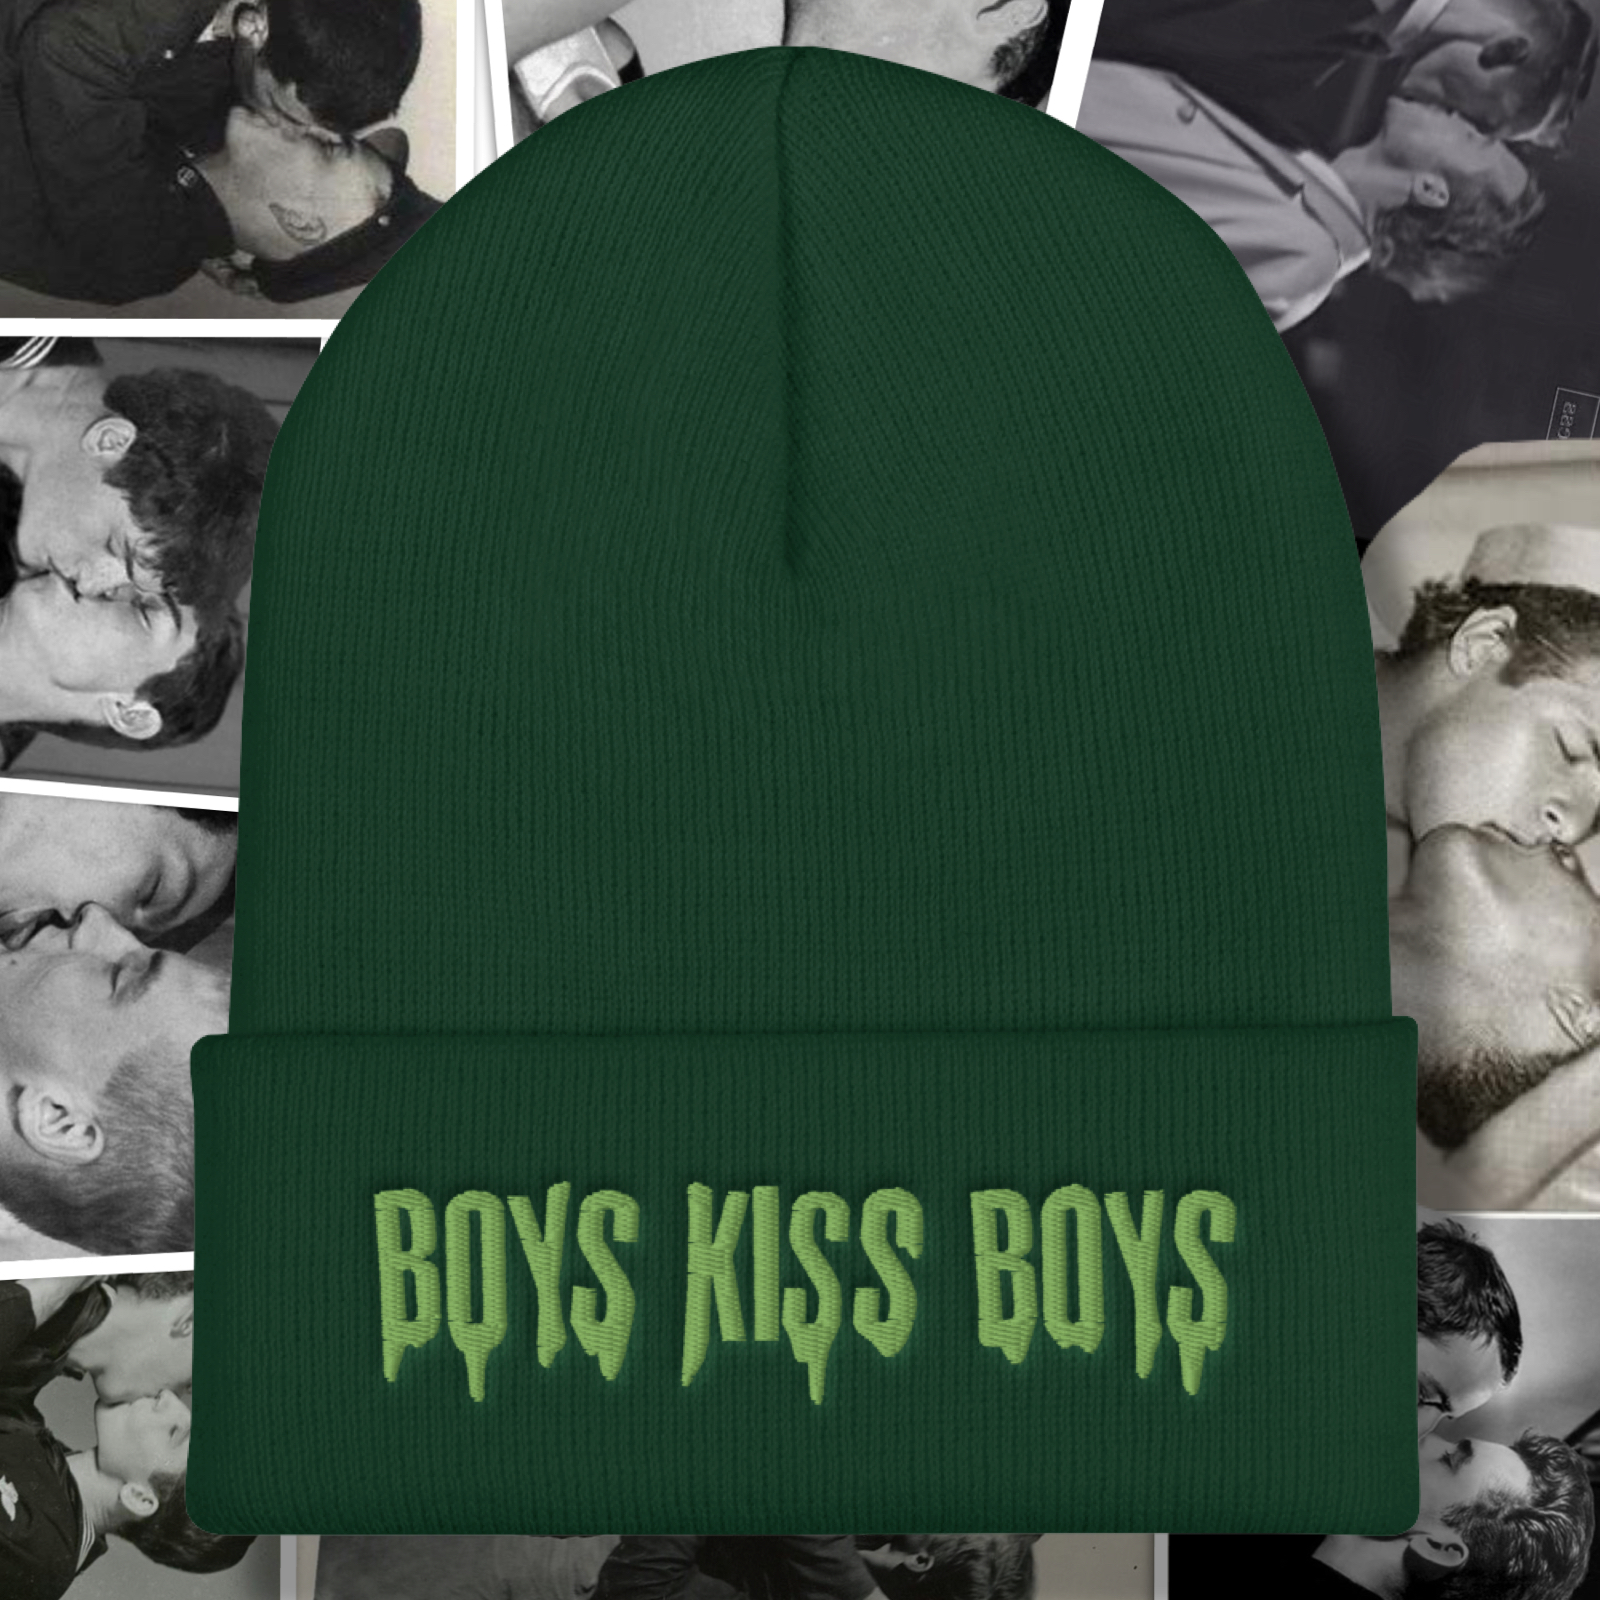 """Featured image for """"Boys Kiss Boys - Zombie Green - Cuffed Beanie"""""""